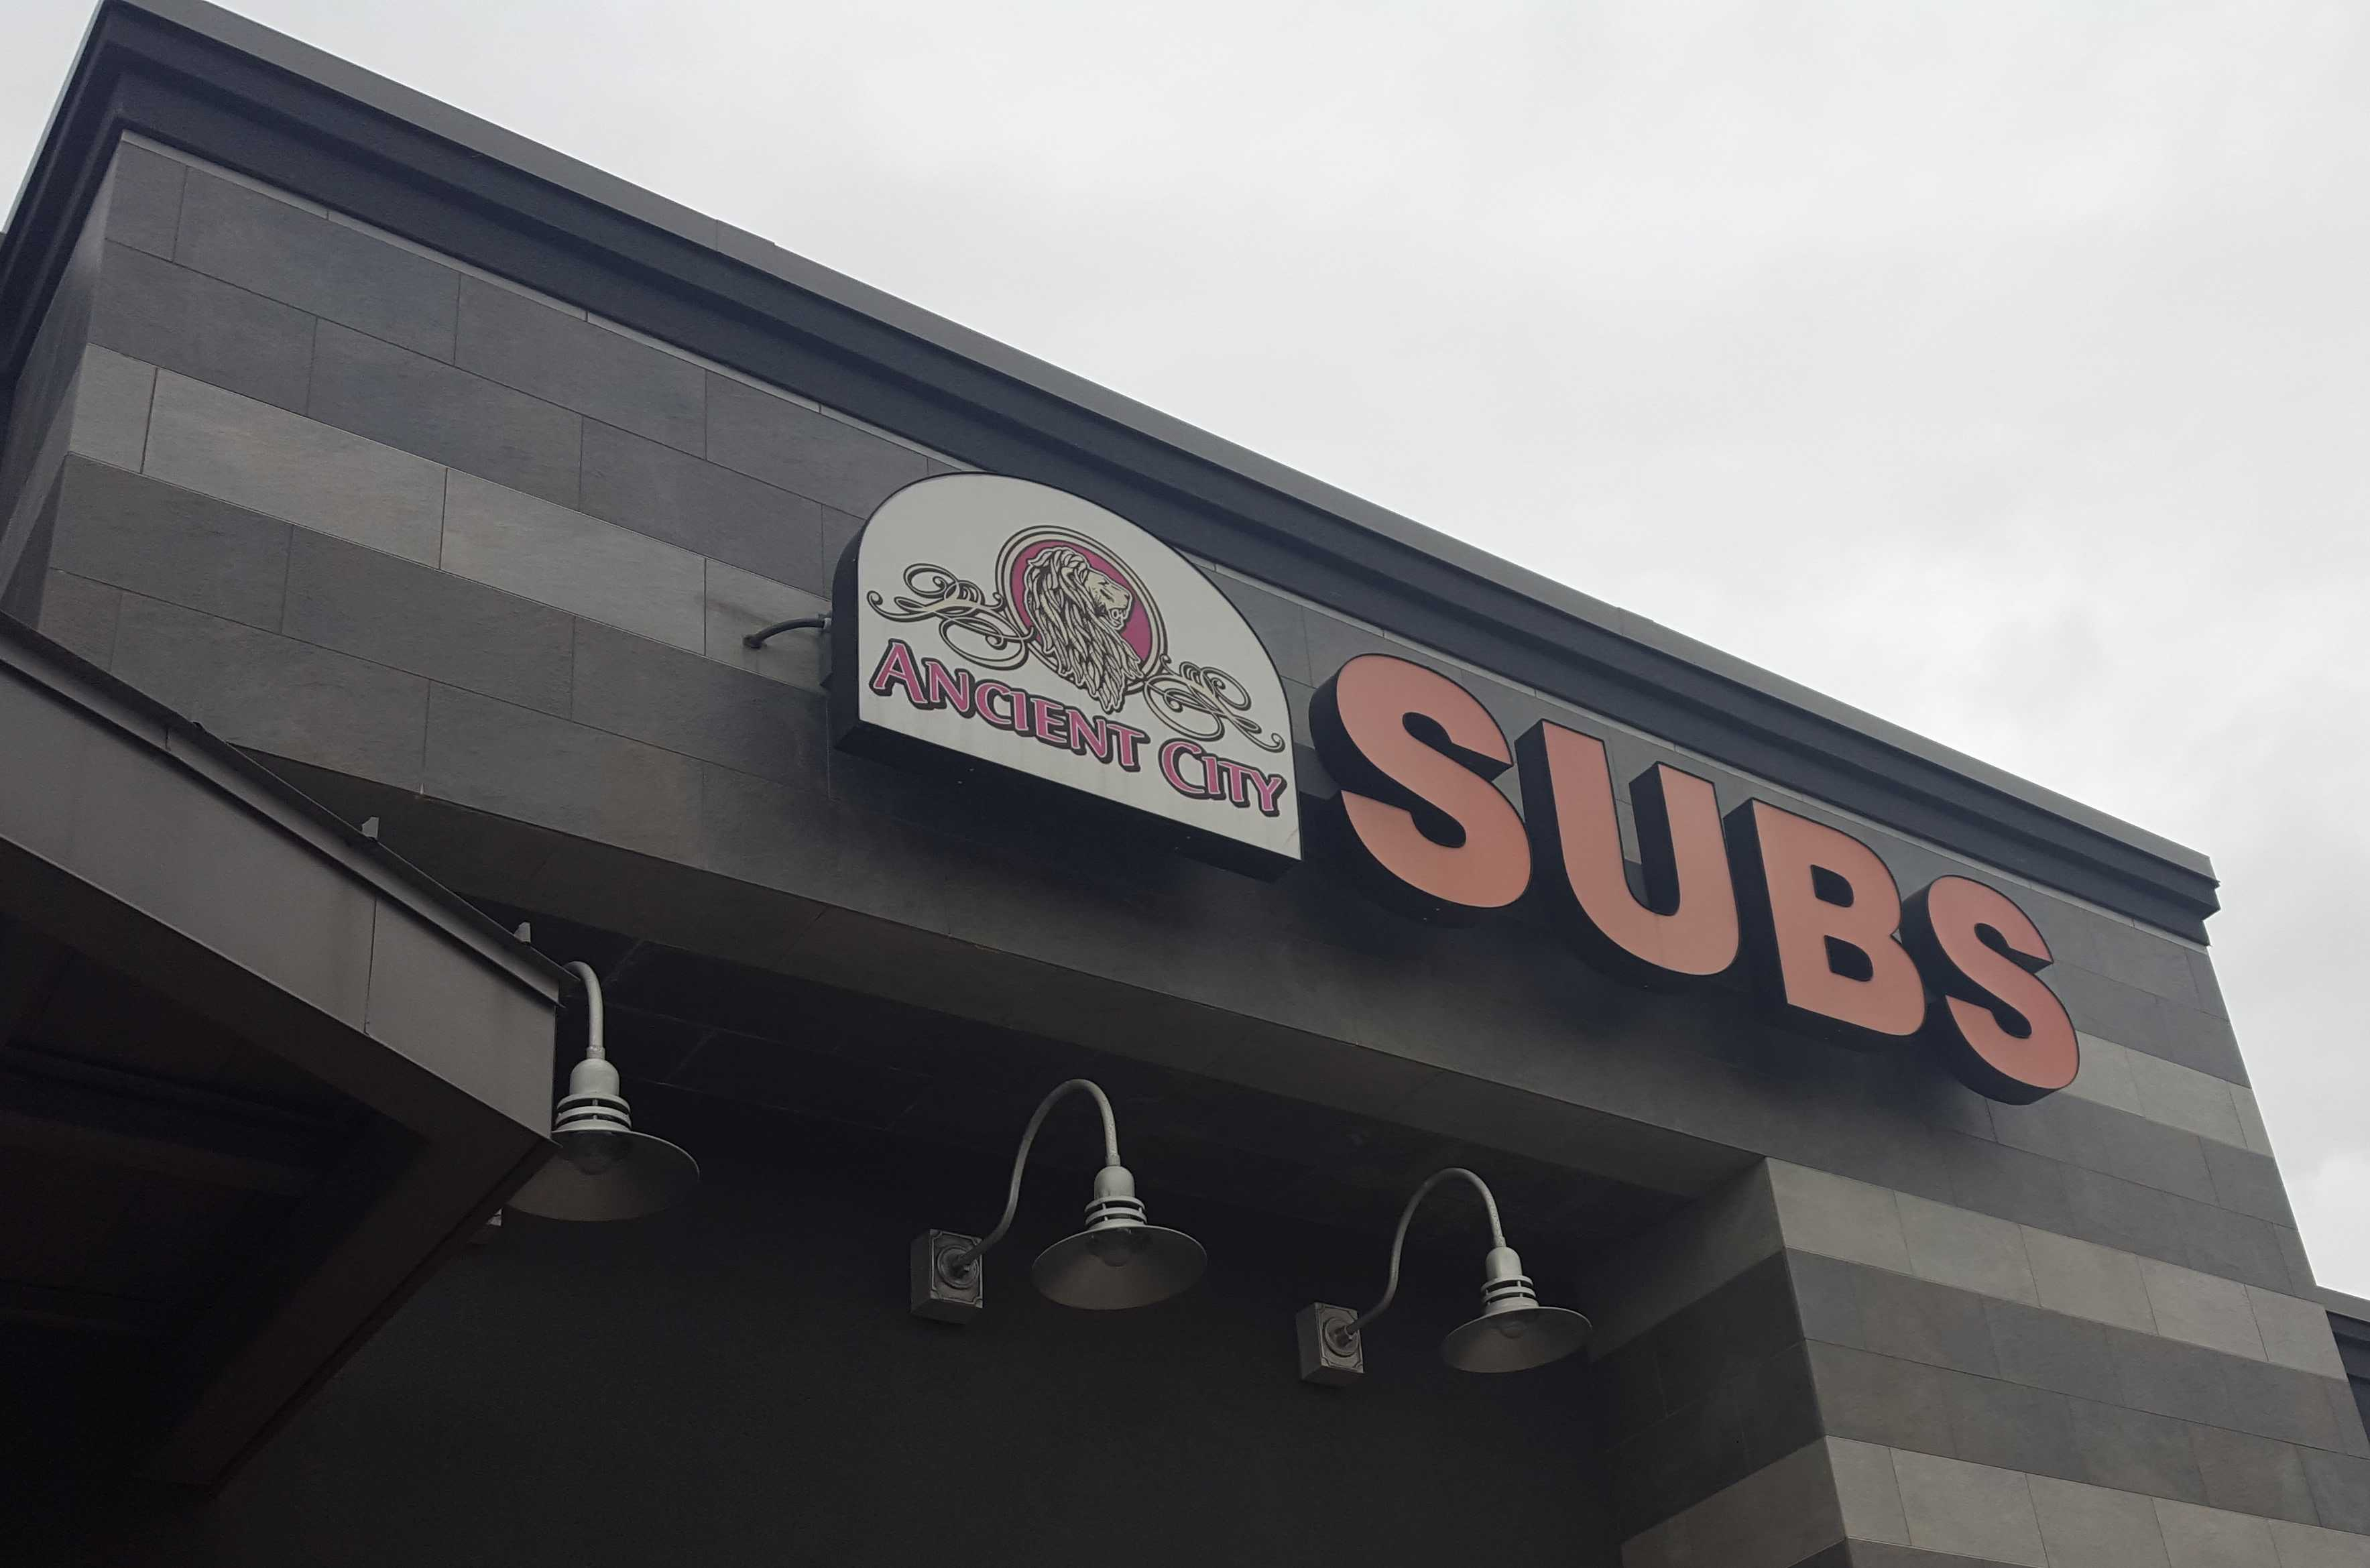 Local Eatery of the Week: Ancient City Subs